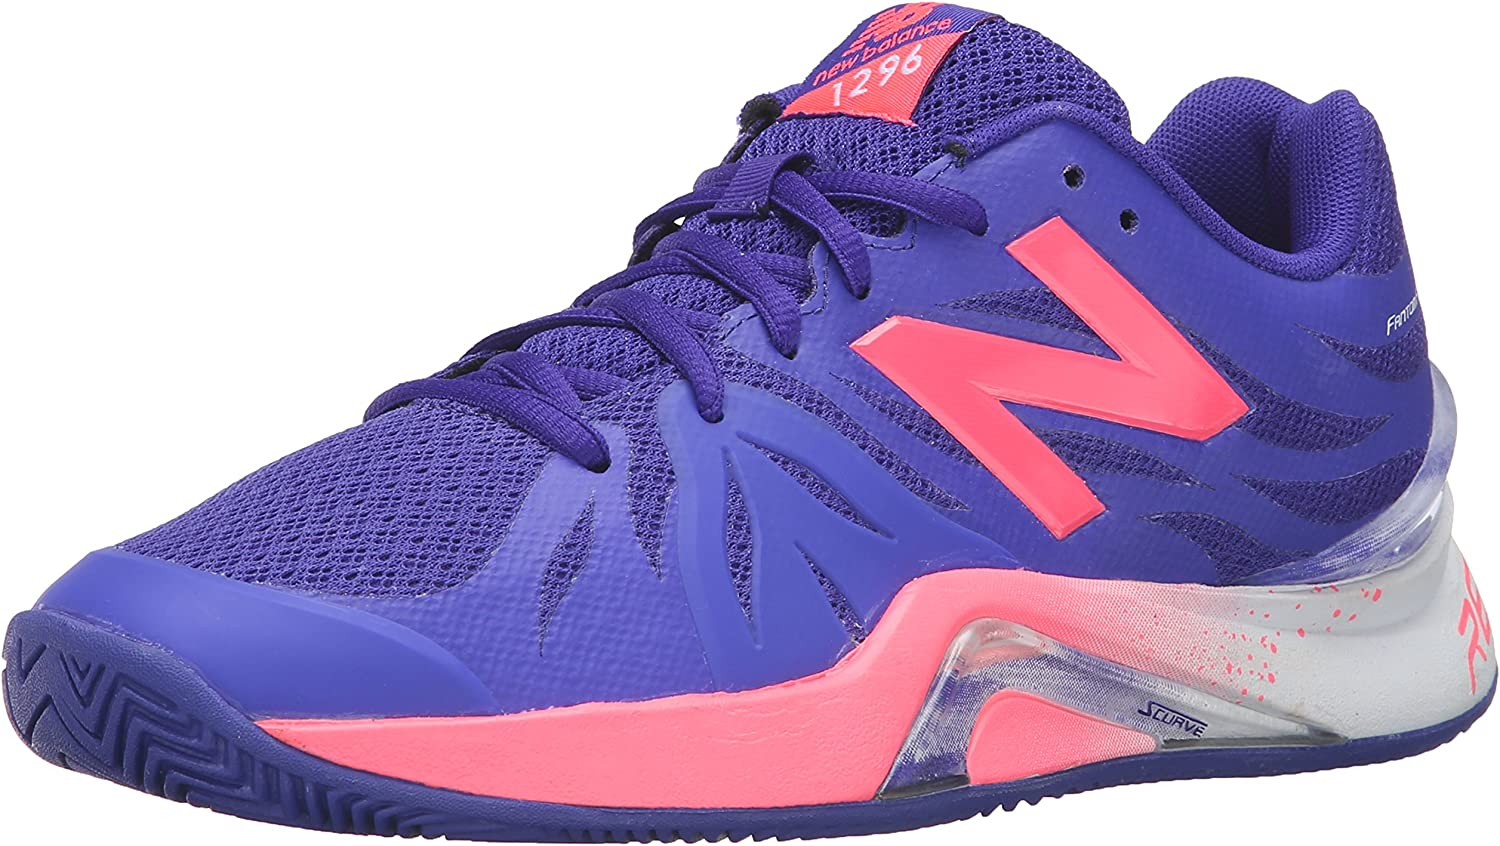 New Balance Women's 1296v2 Stability Tennis shoes